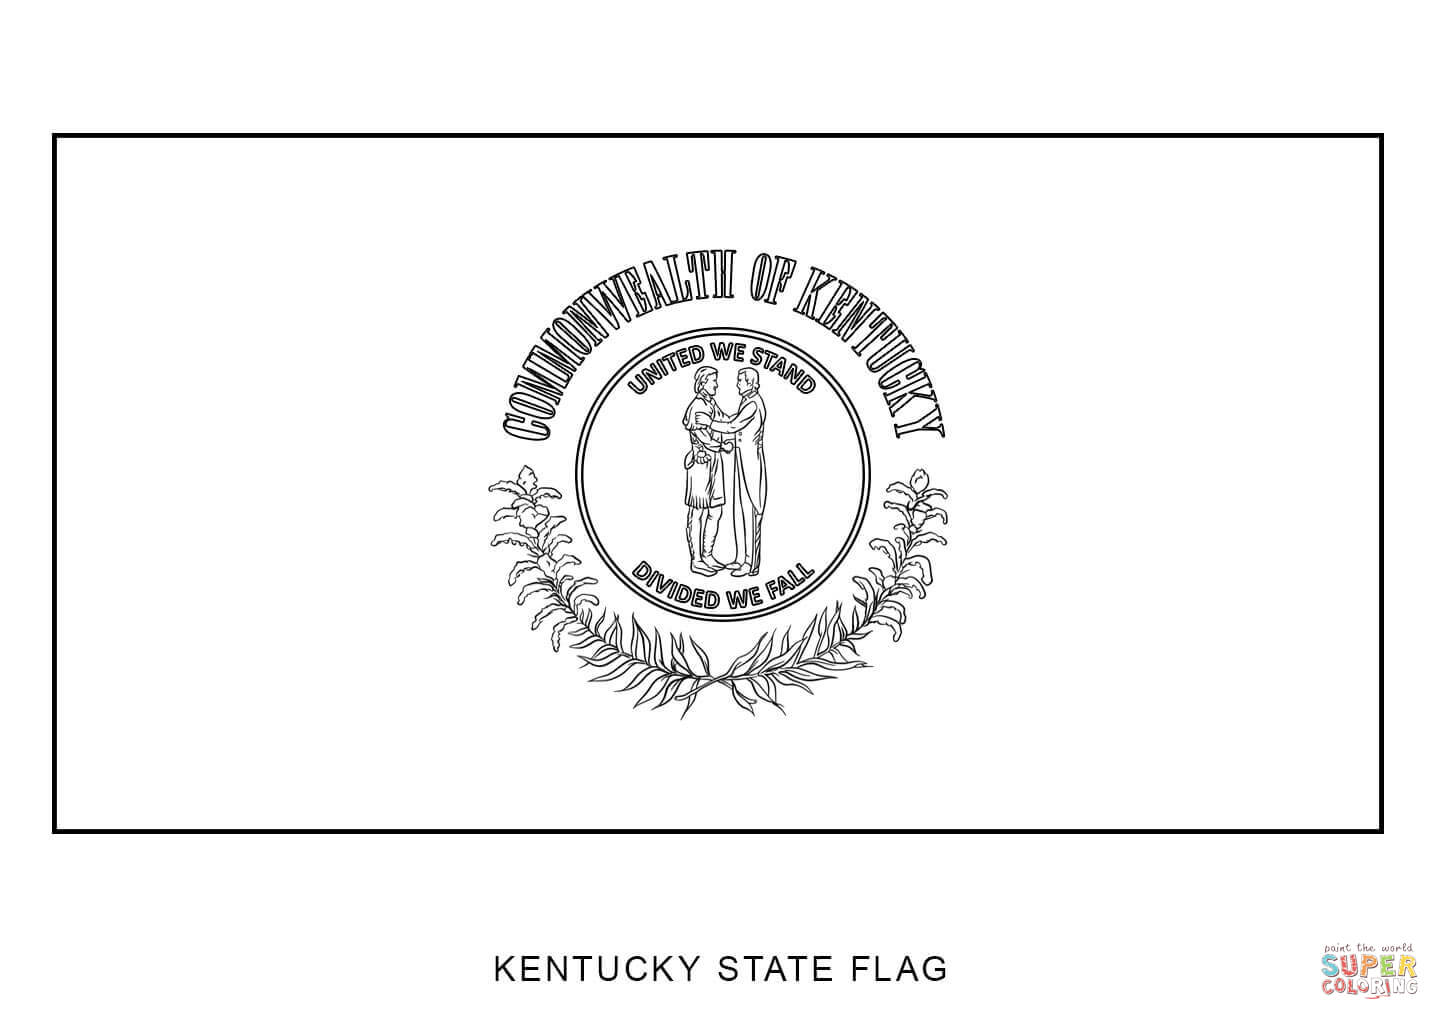 kentucky state flag coloring page kentucky state flag coloring page coloring home state page flag coloring kentucky